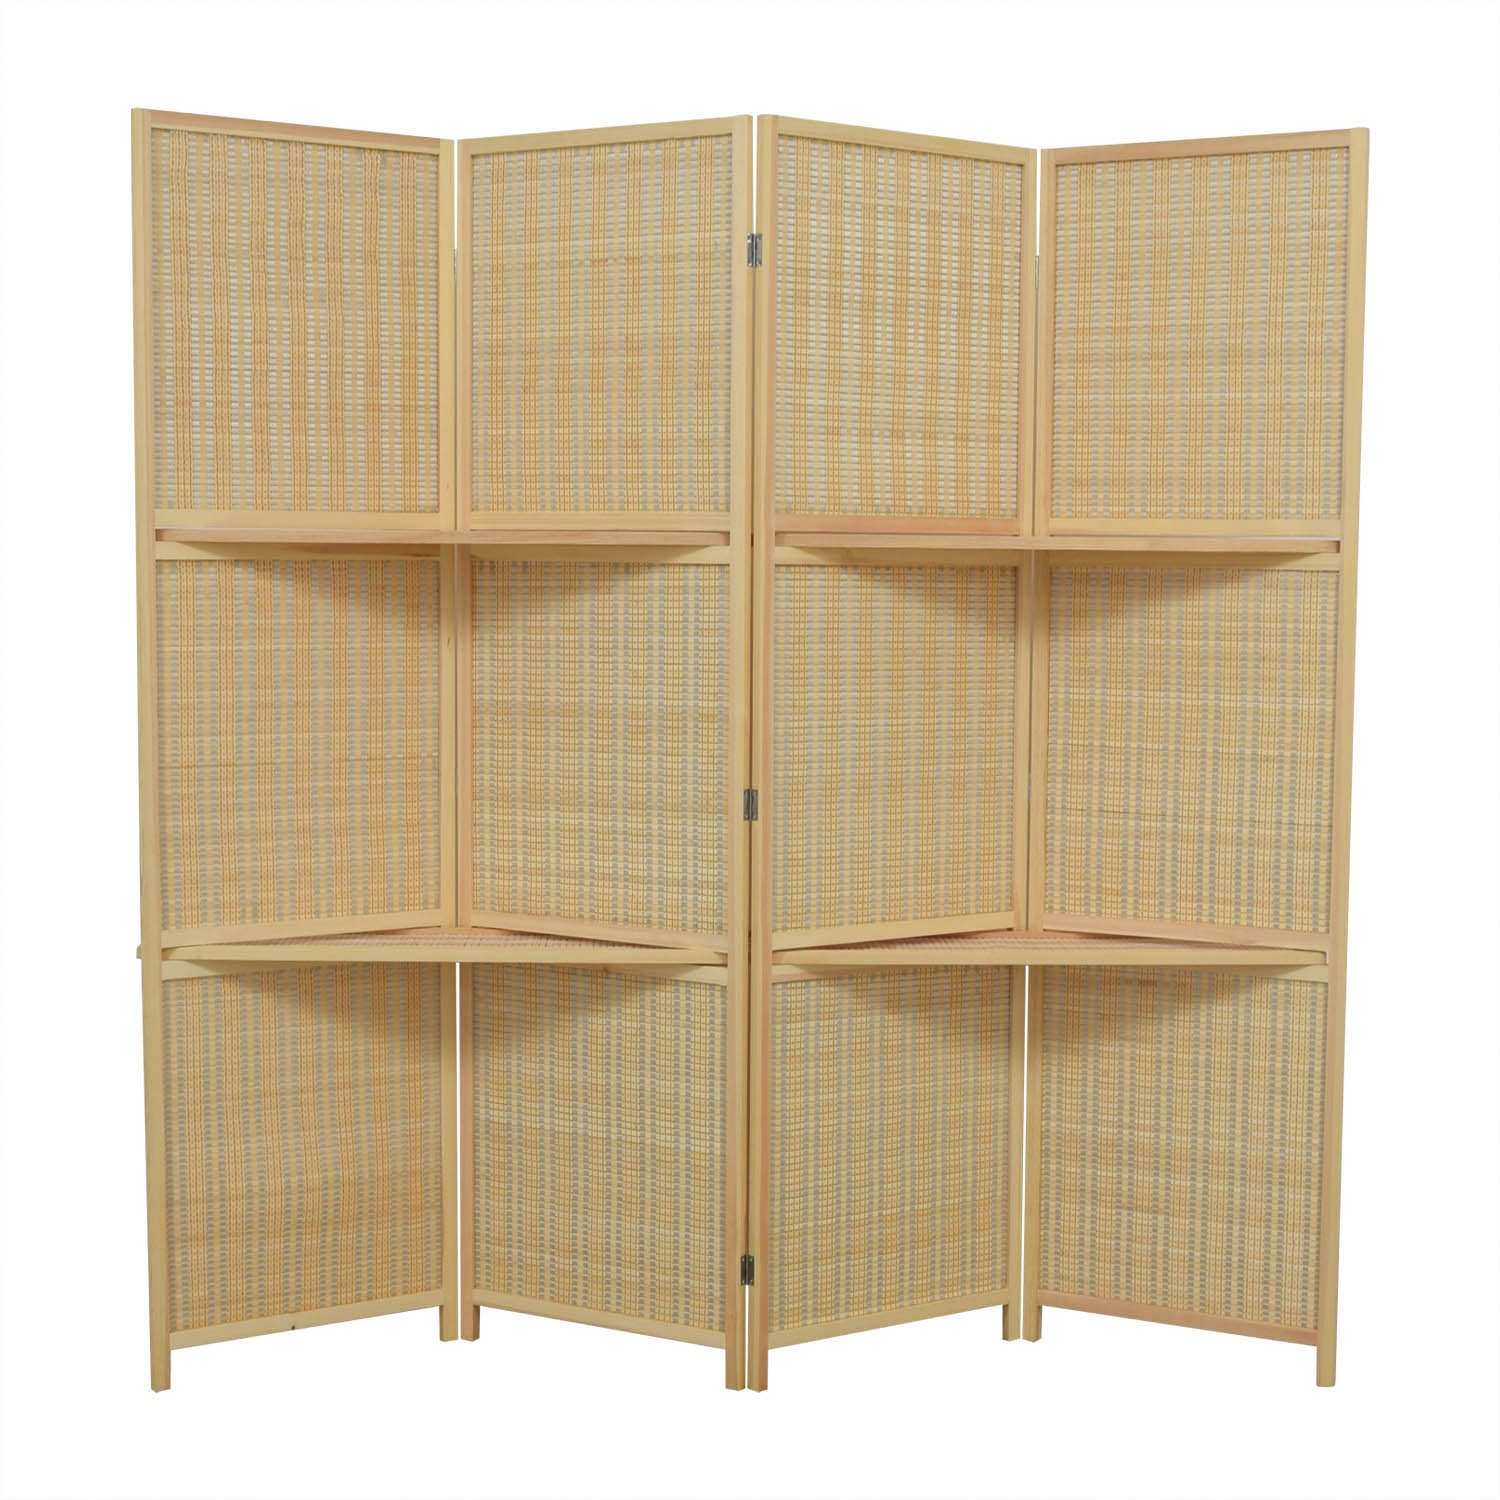 54% Off - Mygift Mygift Woven Bamboo Four Panel Divider Screen W/removable  Storage Shelves / Decor